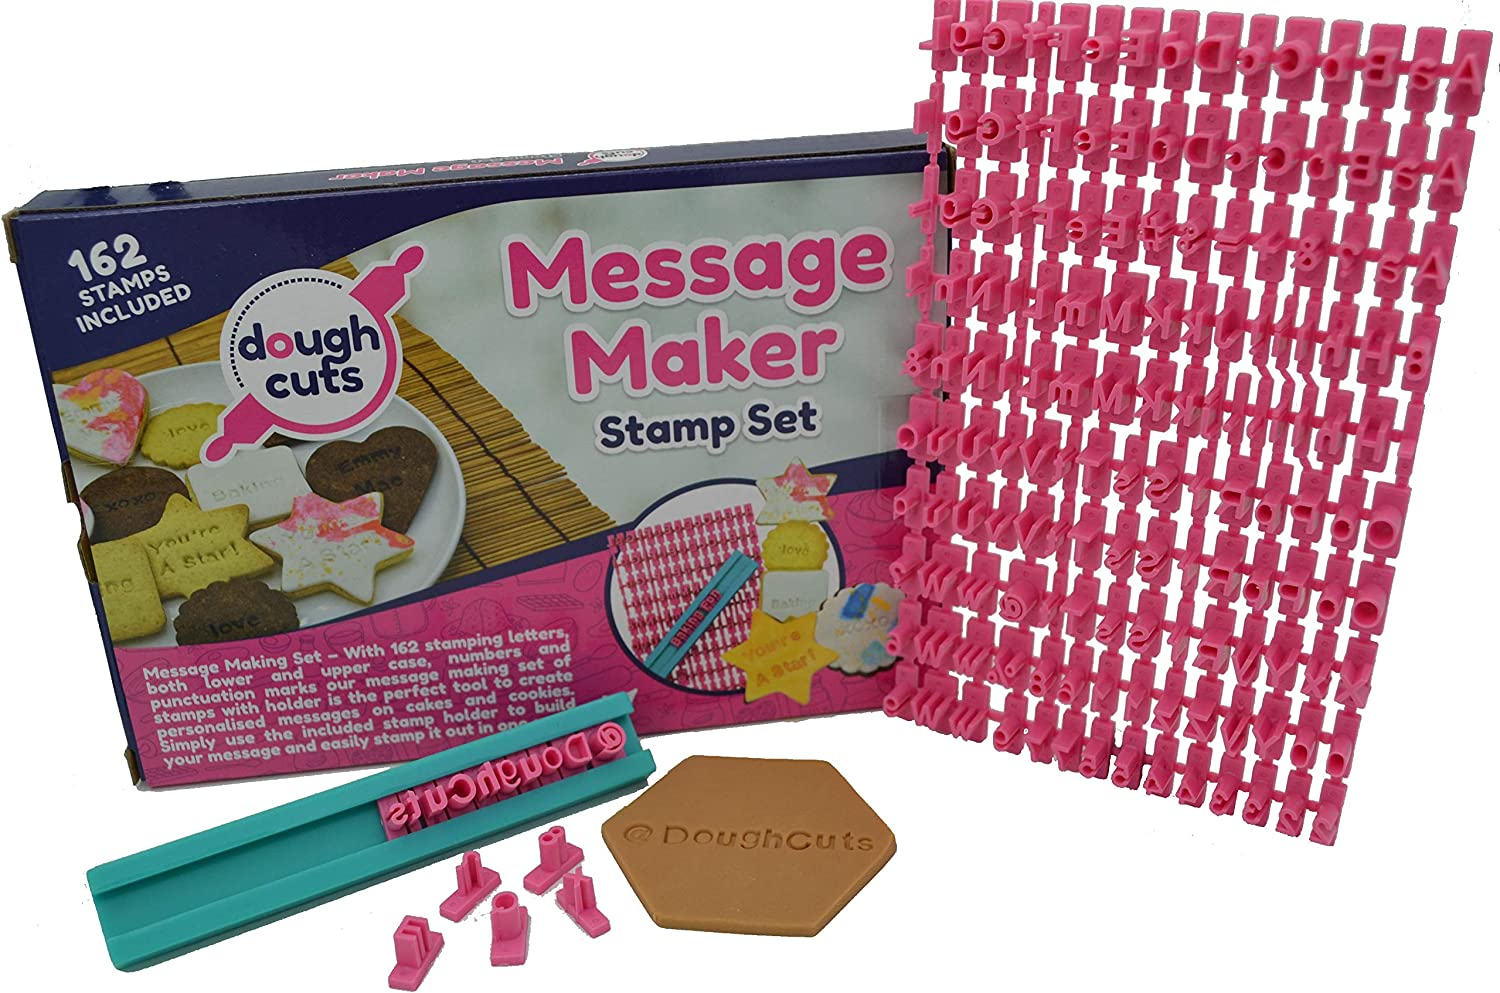 Alphabet Cookie Stamp Set of 162 Small Stamps Including Letters Lower & Upper Case, Numbers and Punctuation Stamps To Make Customizable Stamped Messages In Your Baking Of Cookies, Fondant And Cakes